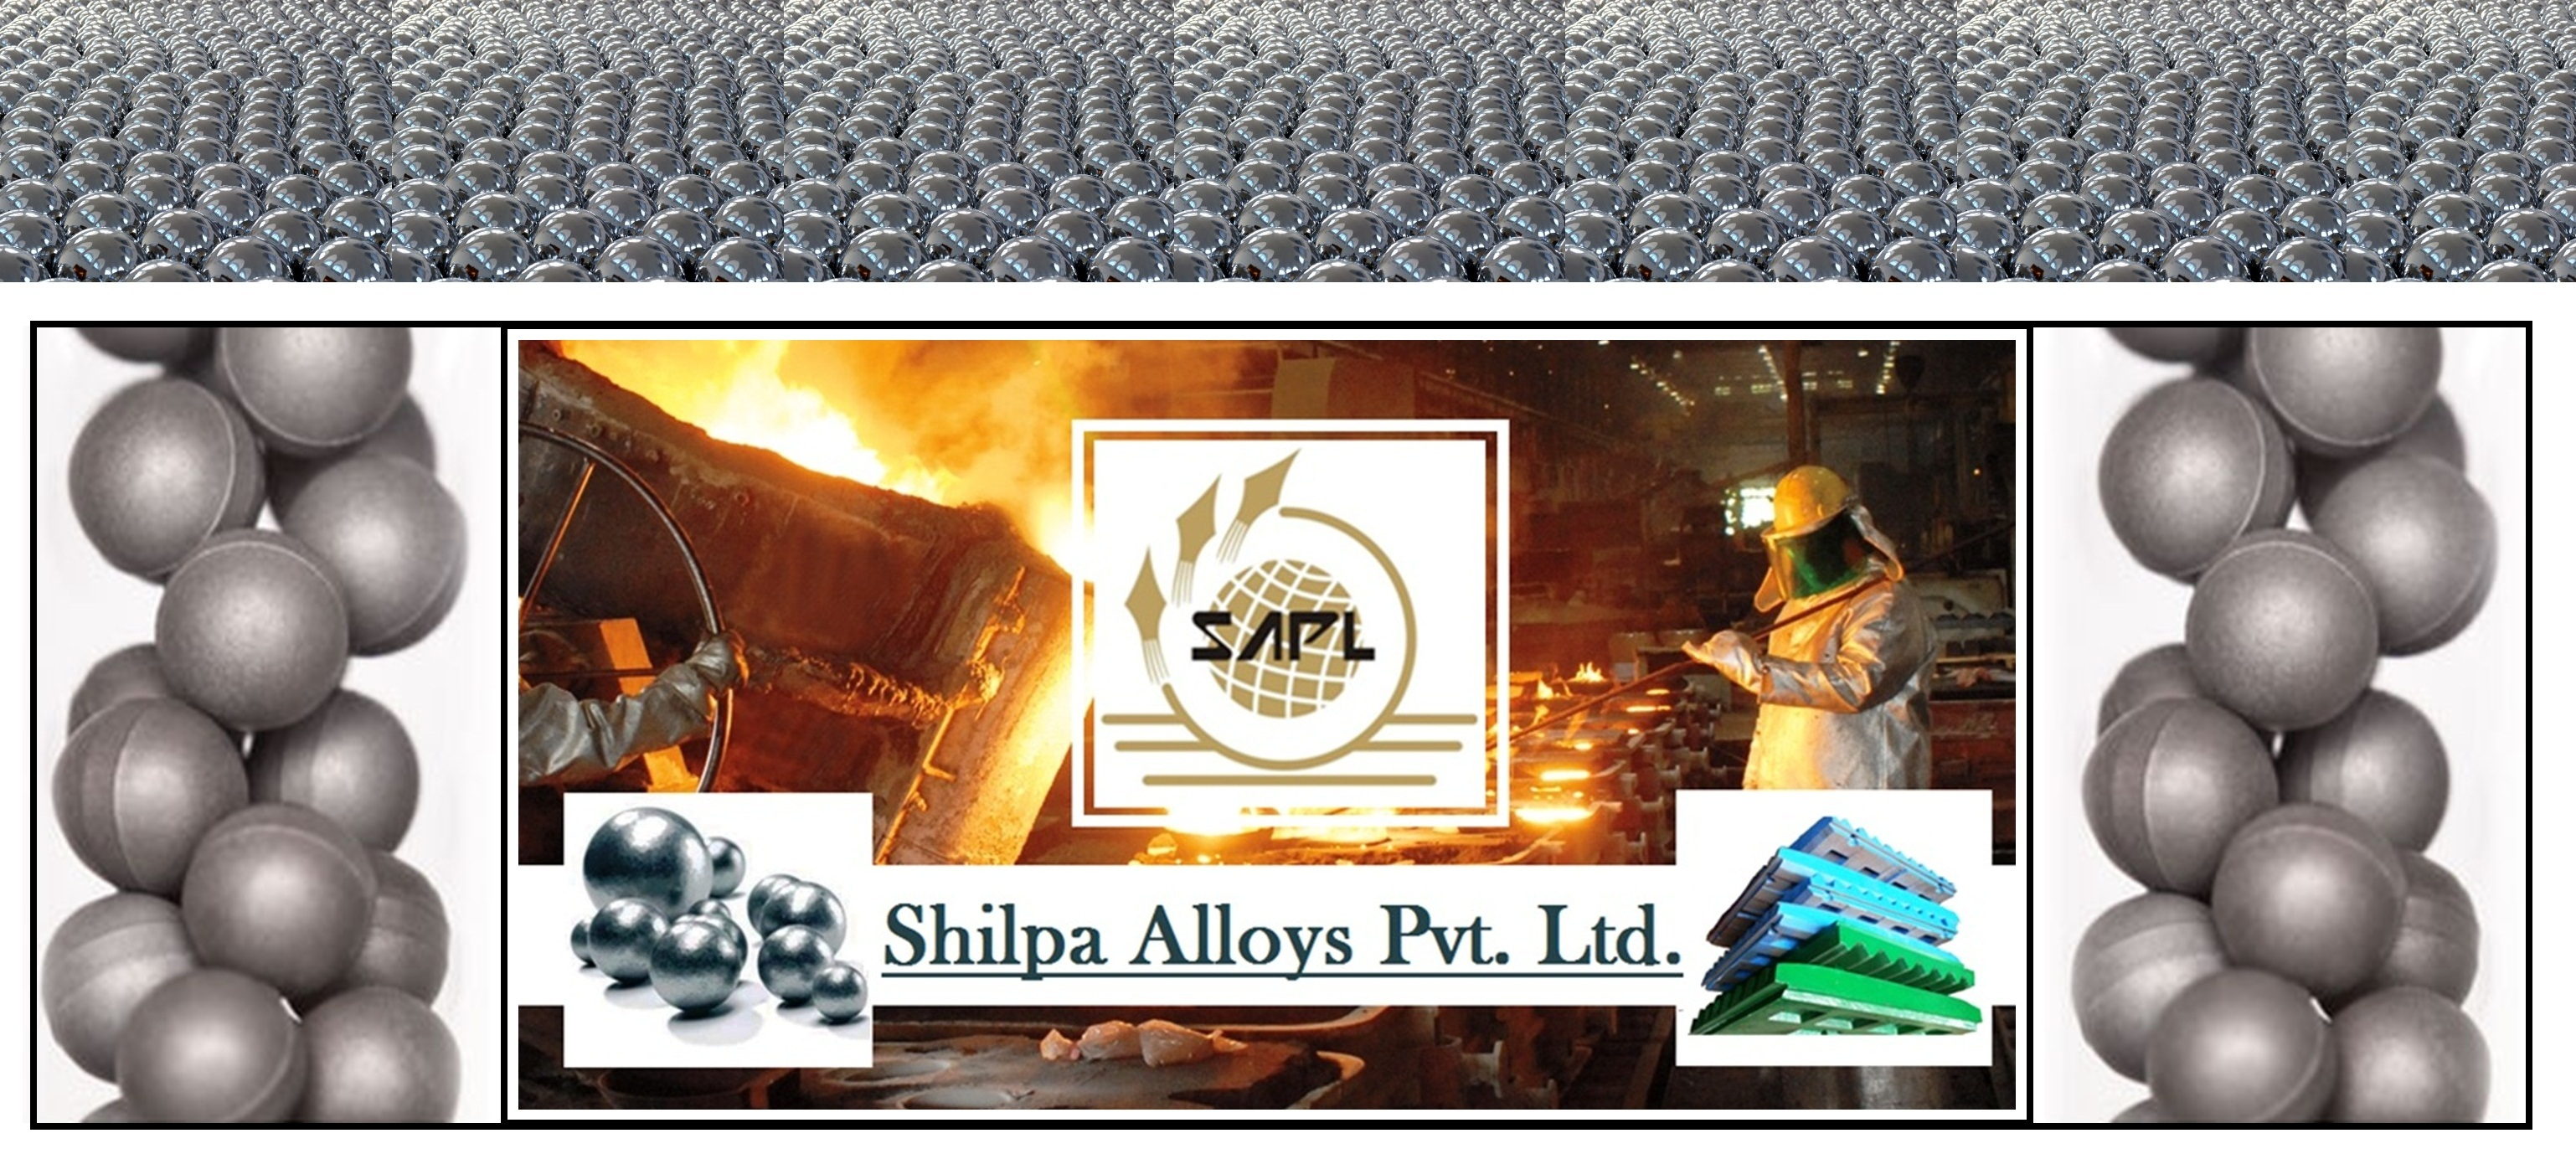 Shilpa Alloys Pvt. Ltd.